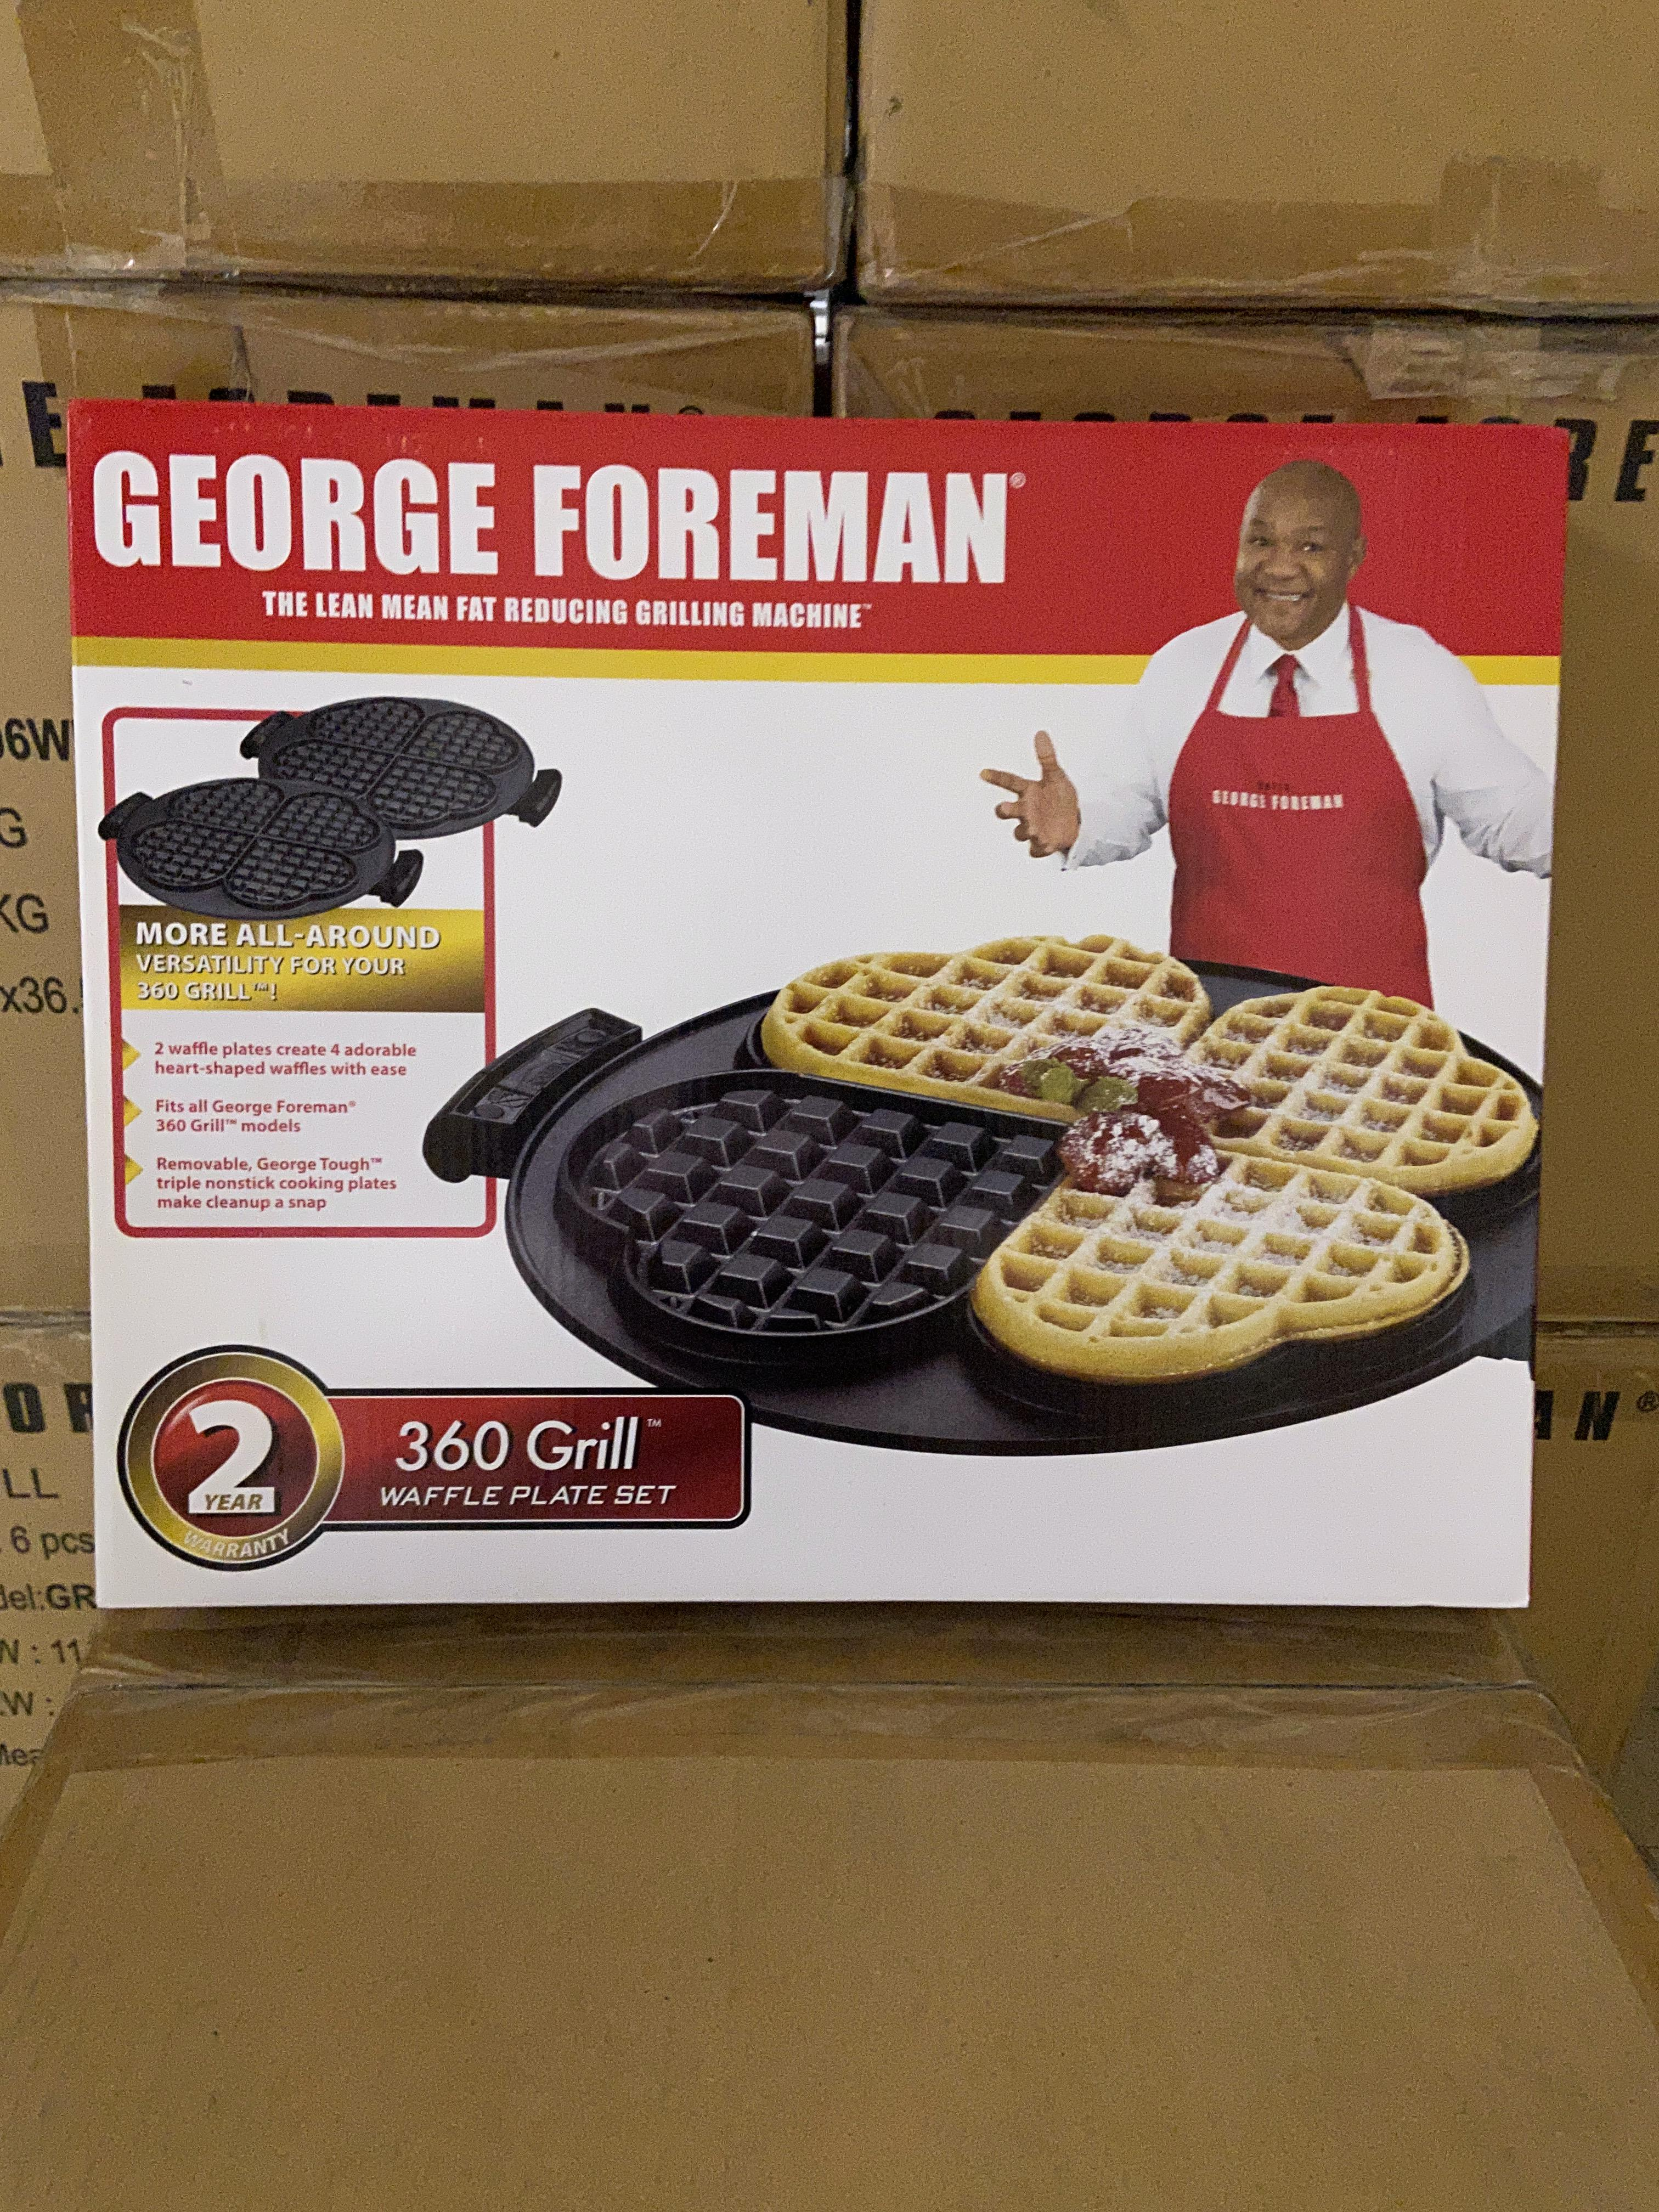 Lot 46 - 55 George Forman 360 Grill Waffle Plate Sets New in Box